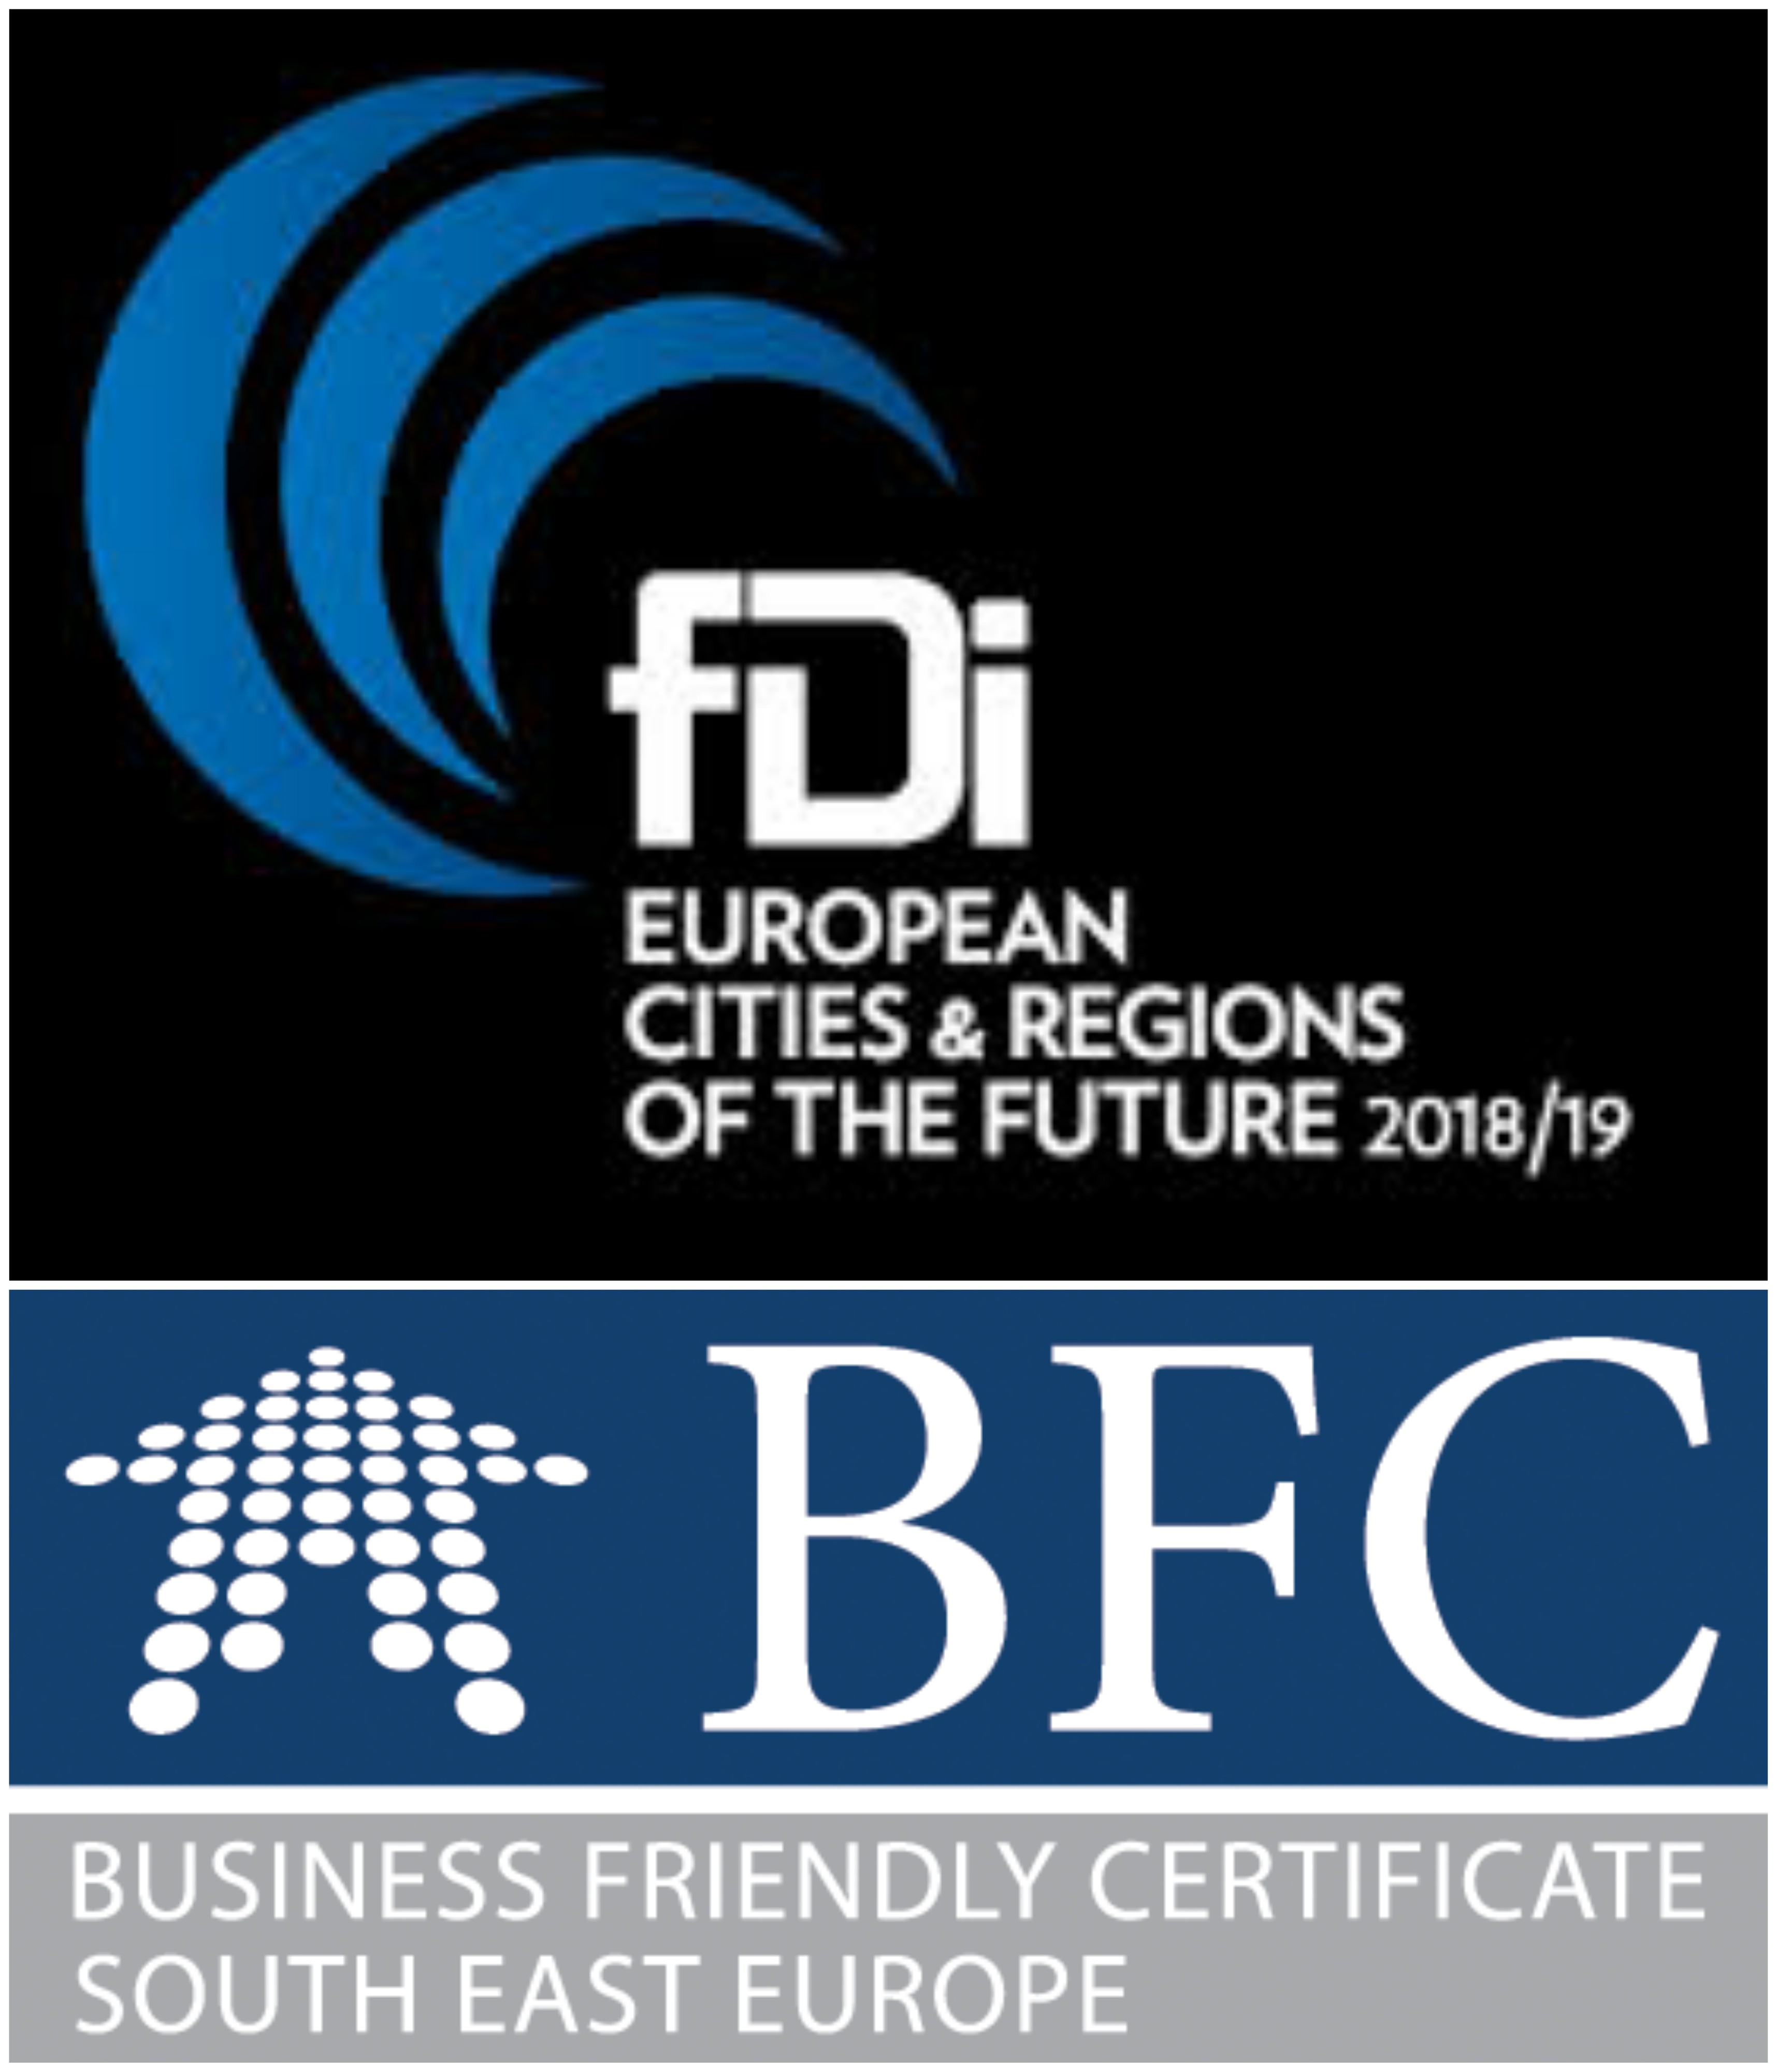 BFC SEE municipalites in fDi's European Cities and Regions of the Future 2018/19 report